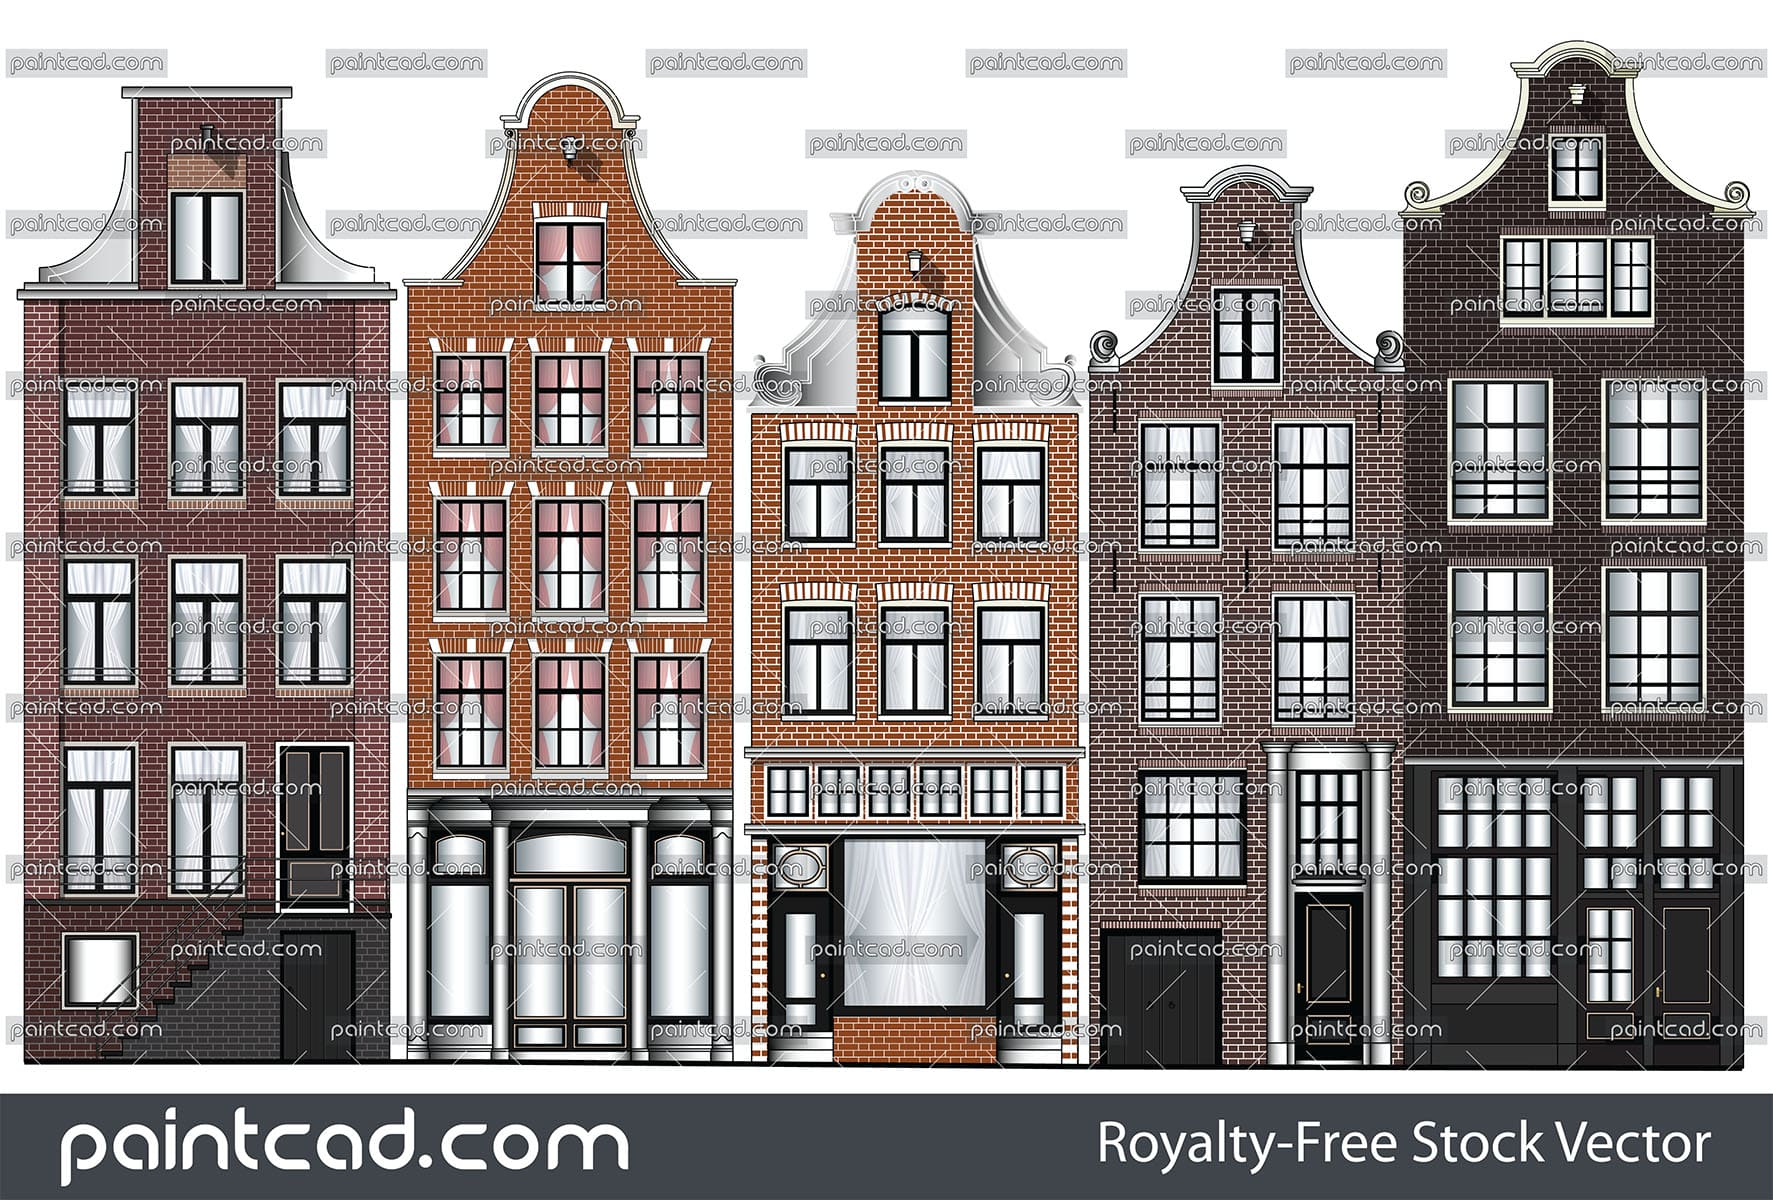 Facades of old canal houses from Amsterdam city, Netherlands. The houses in the Dutch capital usually have a basement for storage a goods and serve to prevention of flooding. For this purpose, they also raised several feet above street level. This type of buildings are slim, long in depth, high and have a narrow stairways. For this reason can not be picked up furniture and large goods through their entrances. Dutch builders figured out a clever way for vertical transport. They used a special lifting installation which is mounted on top of the building. Pulley mechanism is simple and consists of winch and issued crossbar with hook.  Usually this beam is styled with beautiful details. The front walls of the canal houses end with beautiful gables. The facades have a traditional Dutch Clock gable with different decorative shapes. They serve to identify and to decorate the building. The visible brickwork with shaped fugues, horizontal friezes and beautiful woodwork gives beautiful appearance of old Dutch city houses and carry the spirit of the Renaissance. Isolated objects over white background. Colored vector drawing suitable for illustrative purpose and advertising.